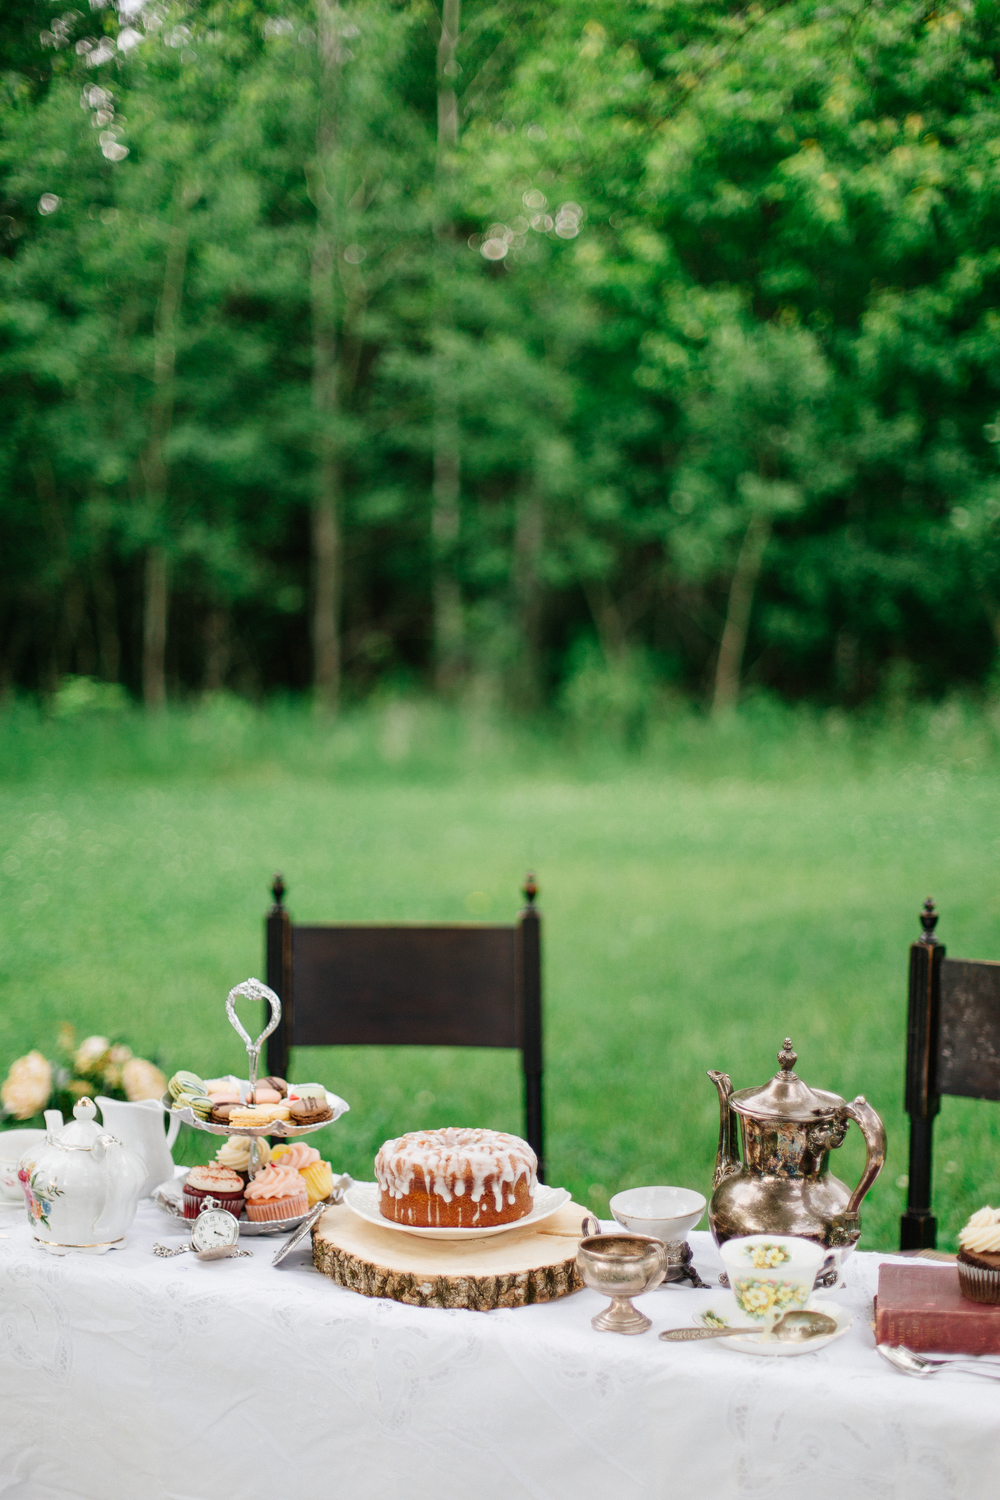 wedding_photographer_minnesota_jen_montgomery_photography[teaparty]-14.jpg